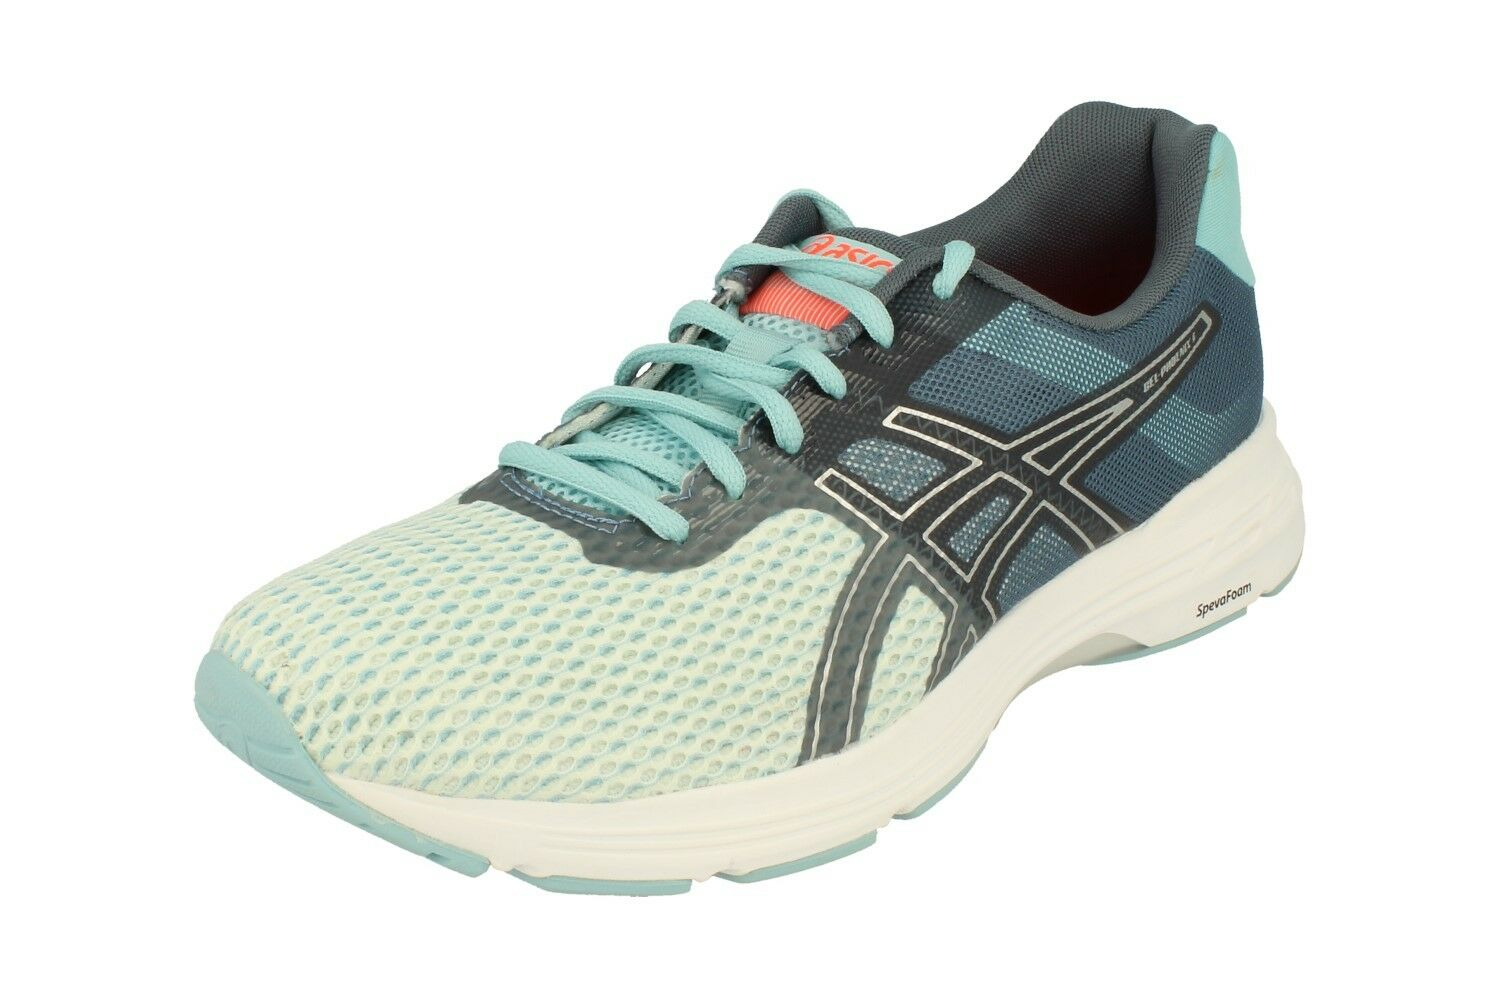 Asics Gel-Pheonix 9 Womens Running Trainers T872N Sneakers shoes 1493